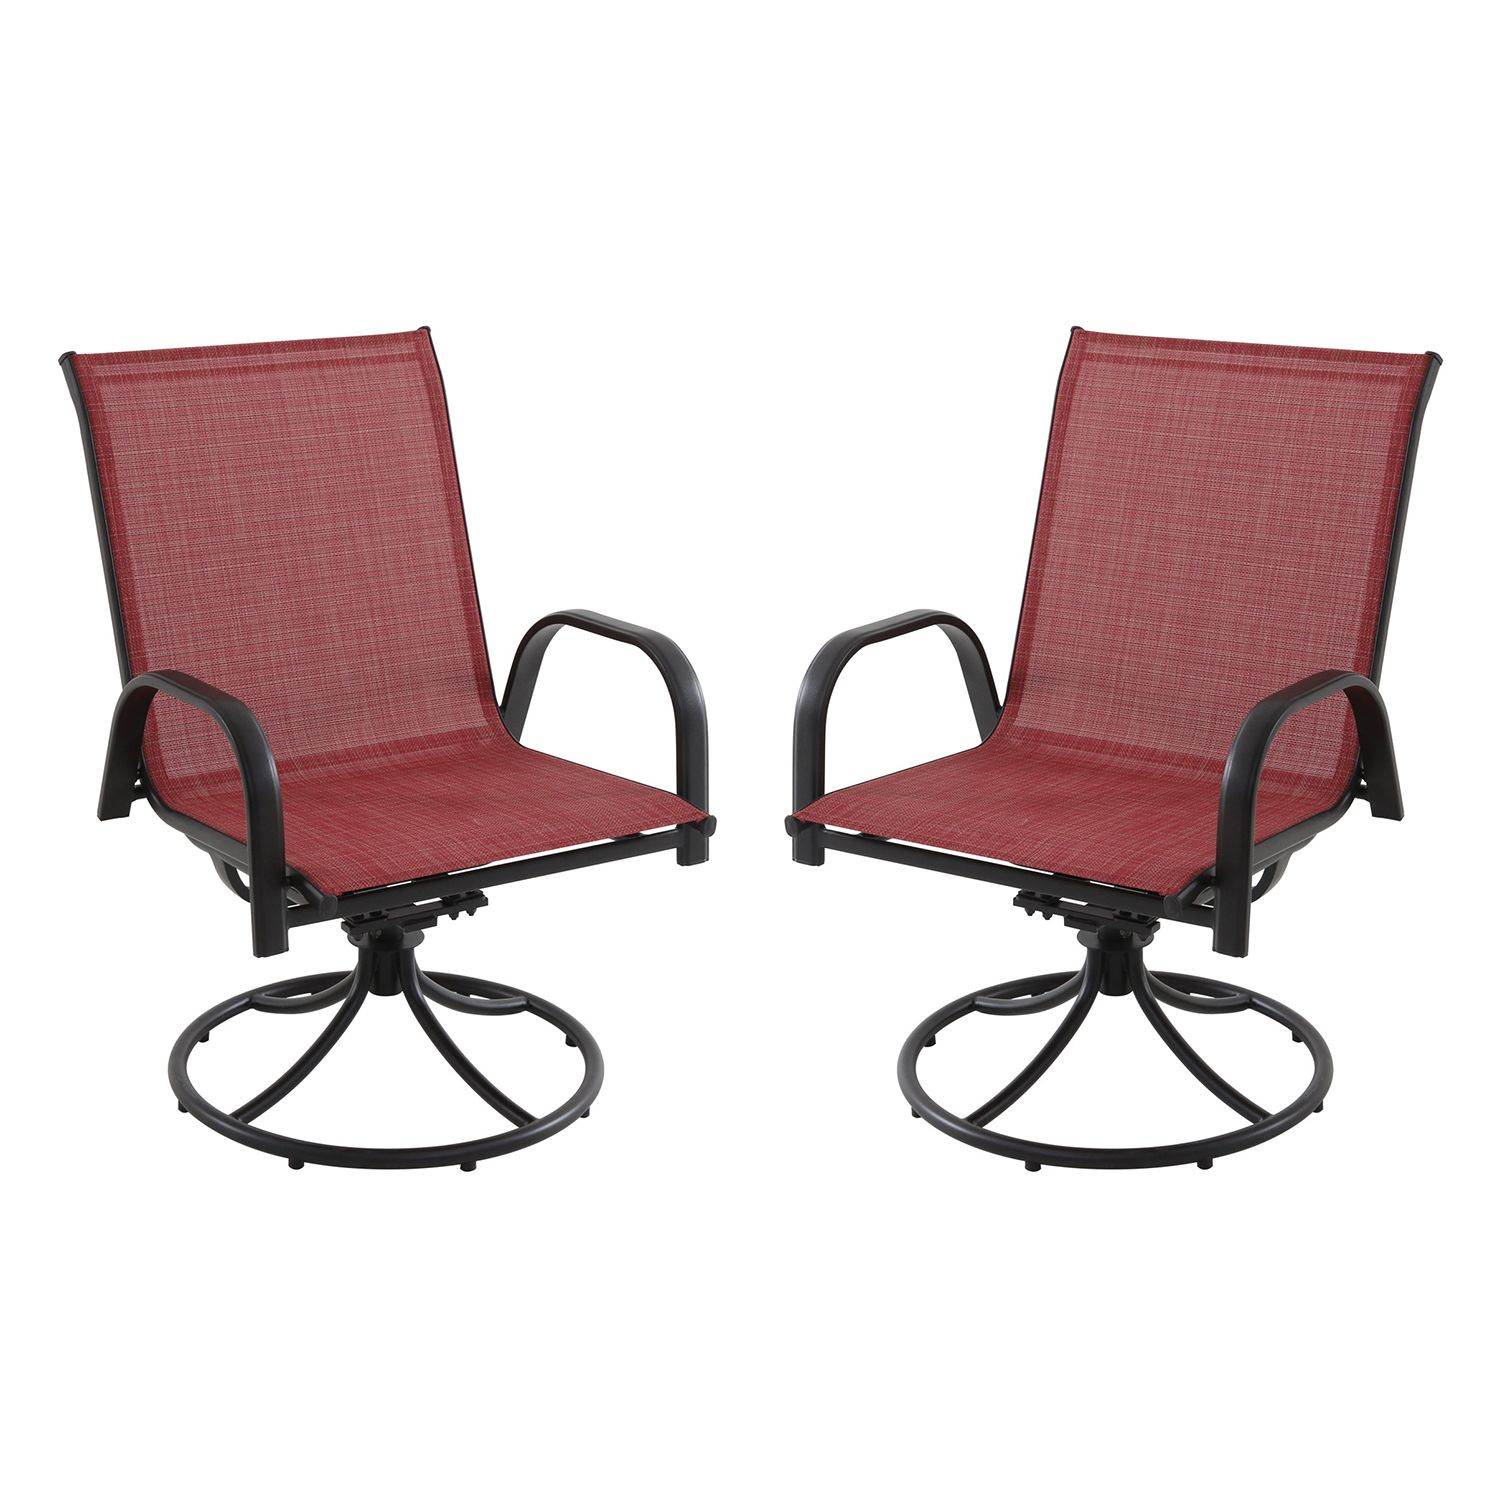 Attirant SONOMA Goods For Life™ Coronado Patio Swivel Chair 2 Piece Set